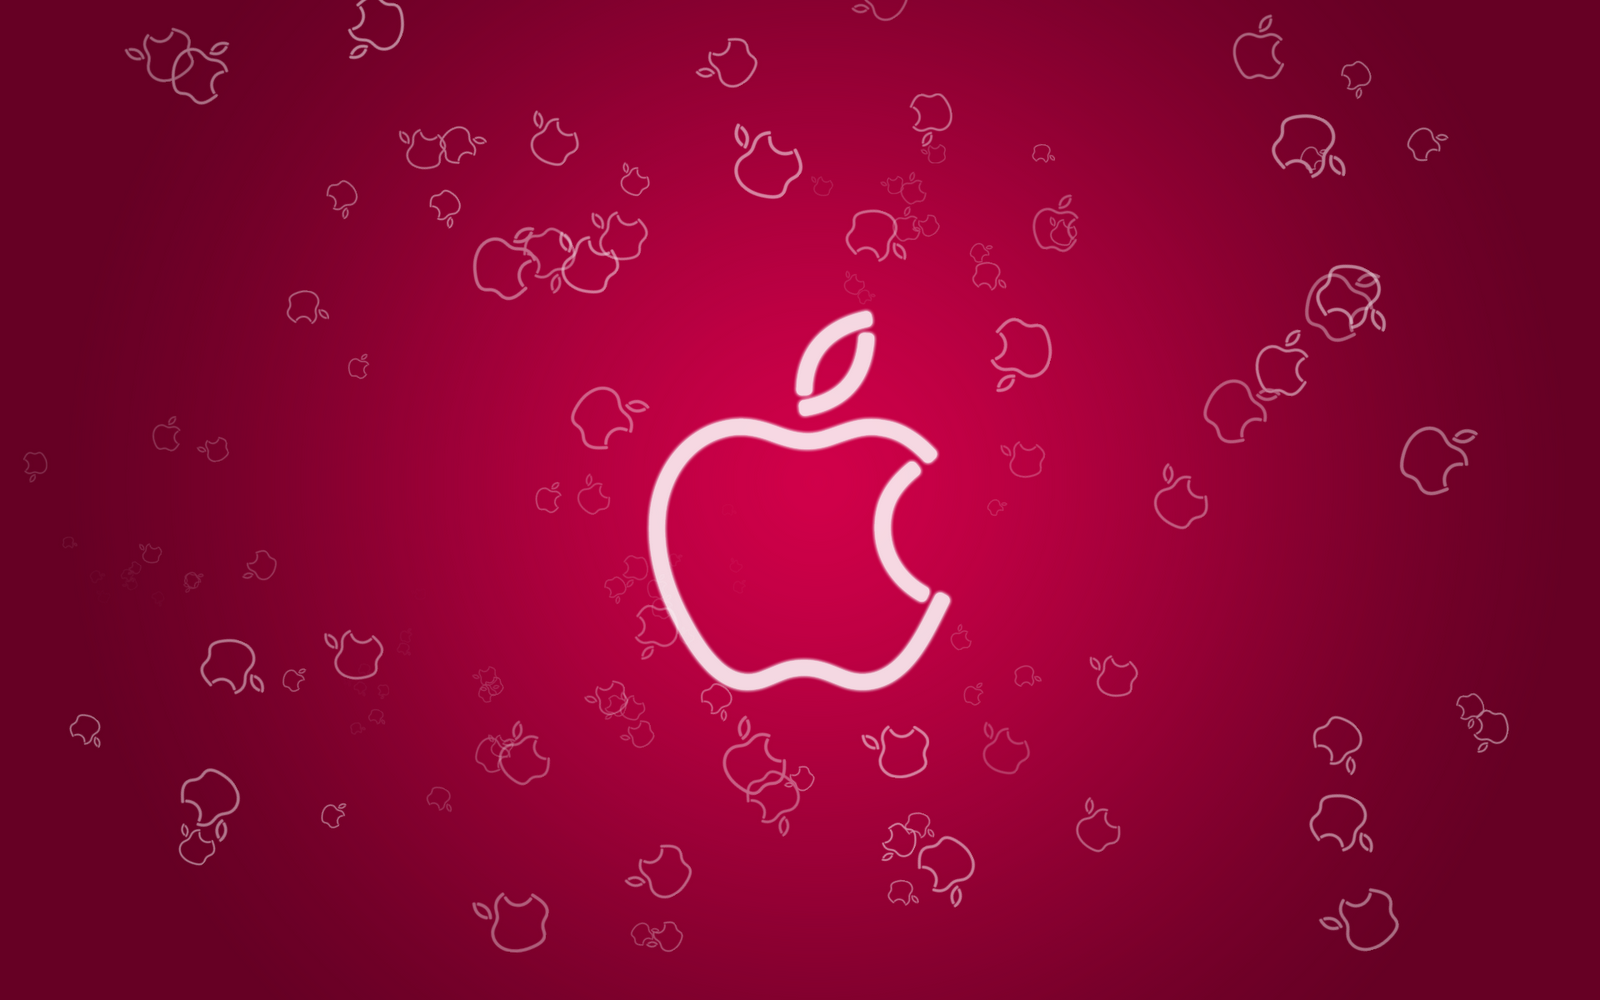 apple iphone hd wallpapers | art and entertainment blog